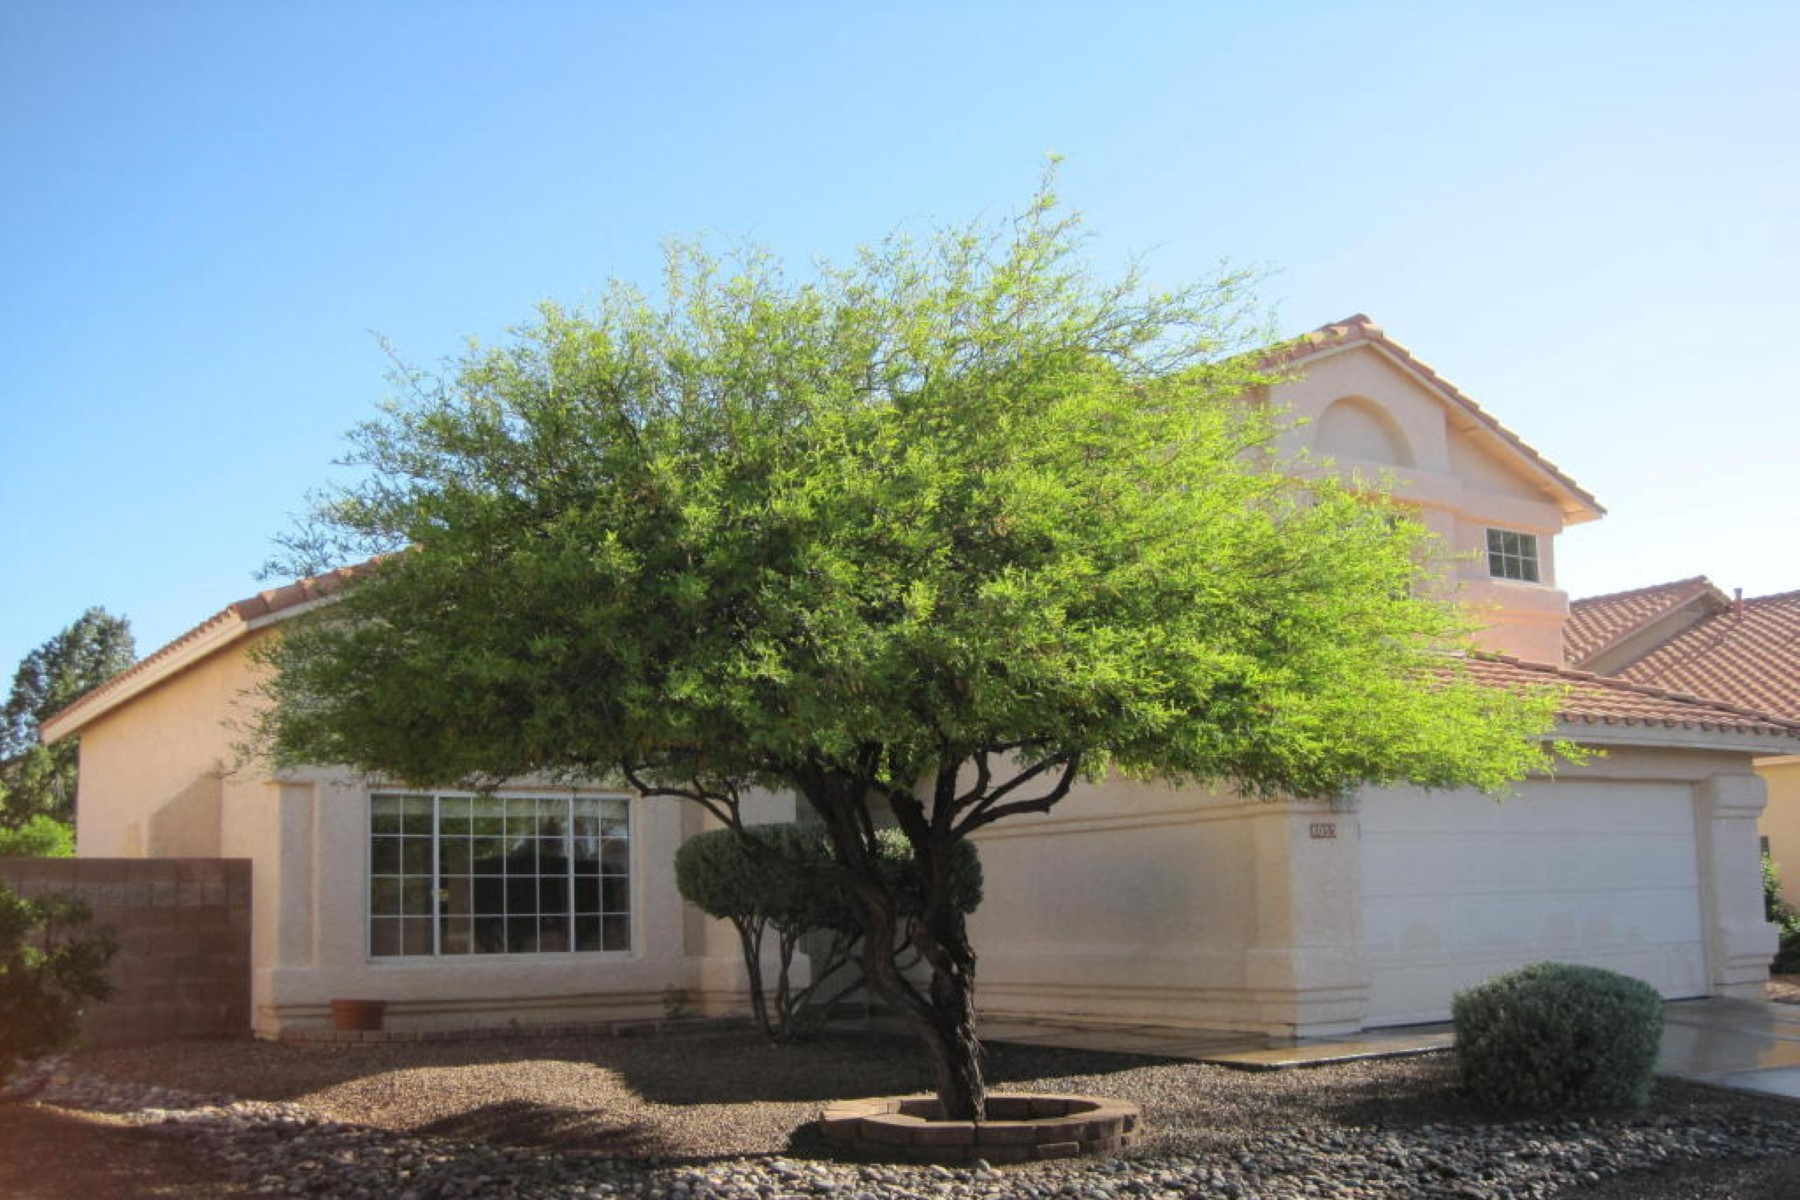 Vivienda unifamiliar por un Venta en Safe, serene, and quiet neighborhood. 8055 E Mason Street Tucson, Arizona 85715 Estados Unidos